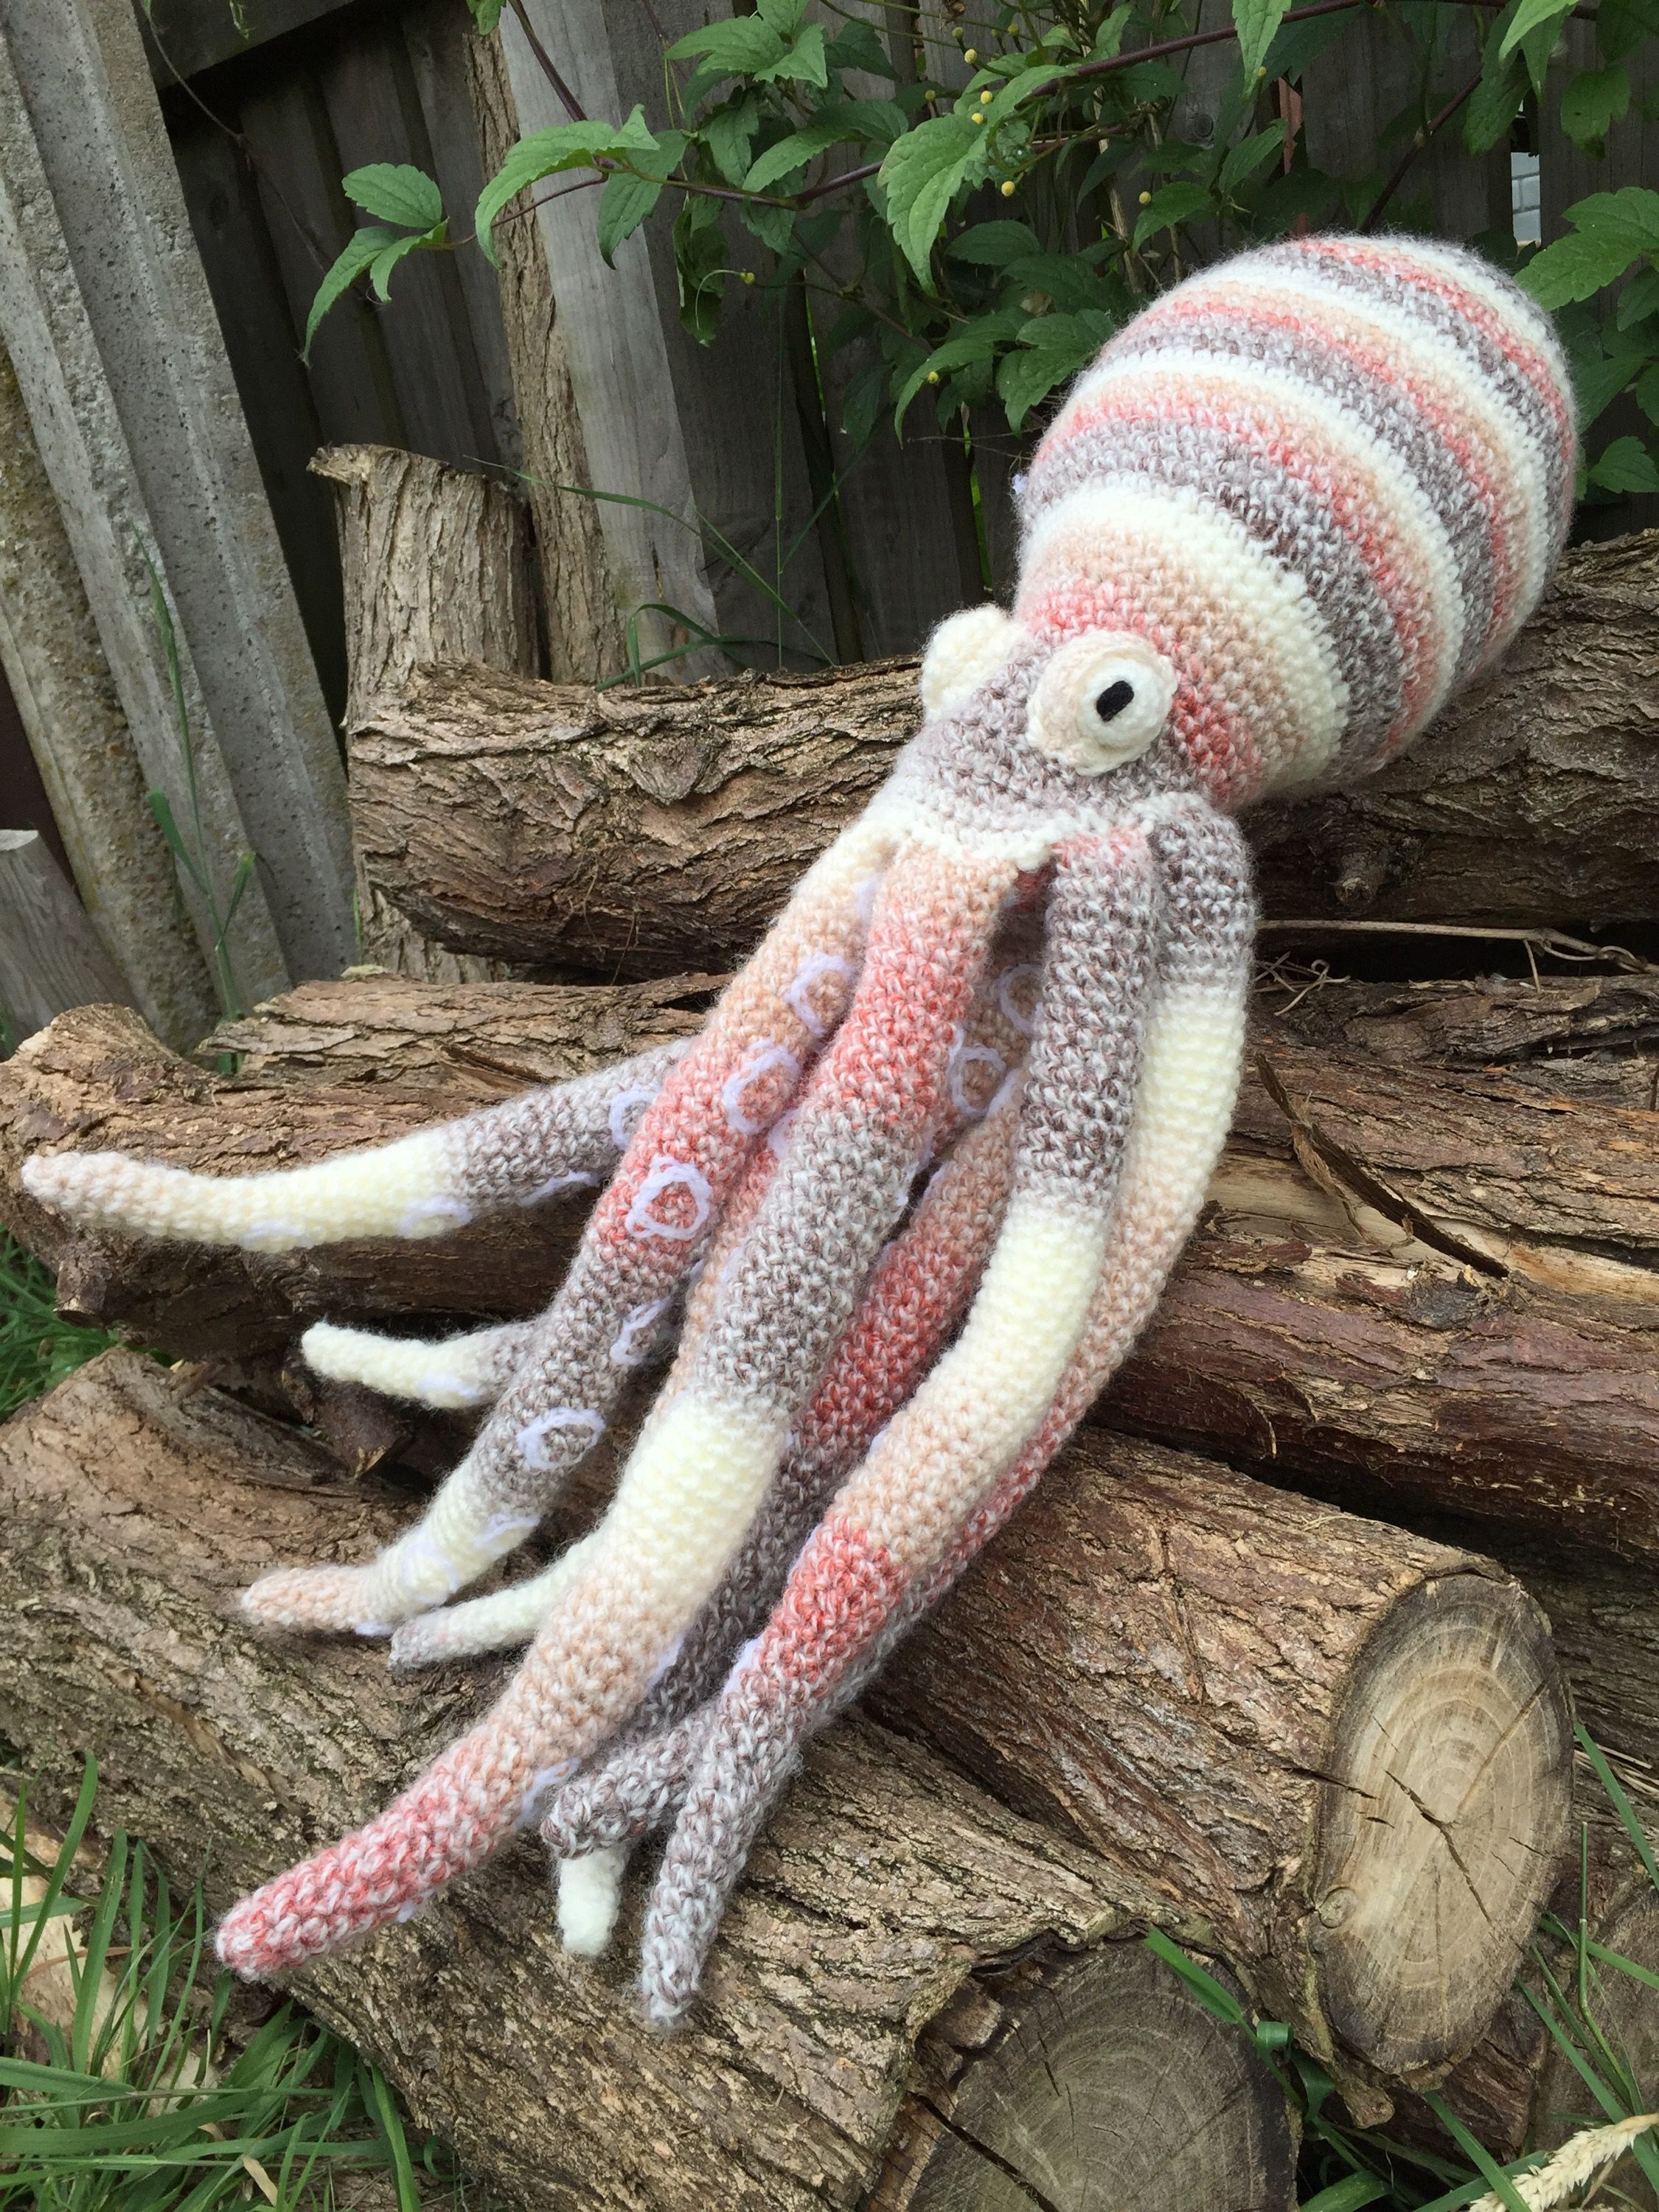 I have a feeling the sea is going to start getting a bit crowded with all these sea makes! Joining Sidney the squid is Oscar the crochet Octopus, designing this pattern was quite a challenge! #crochetoctopus